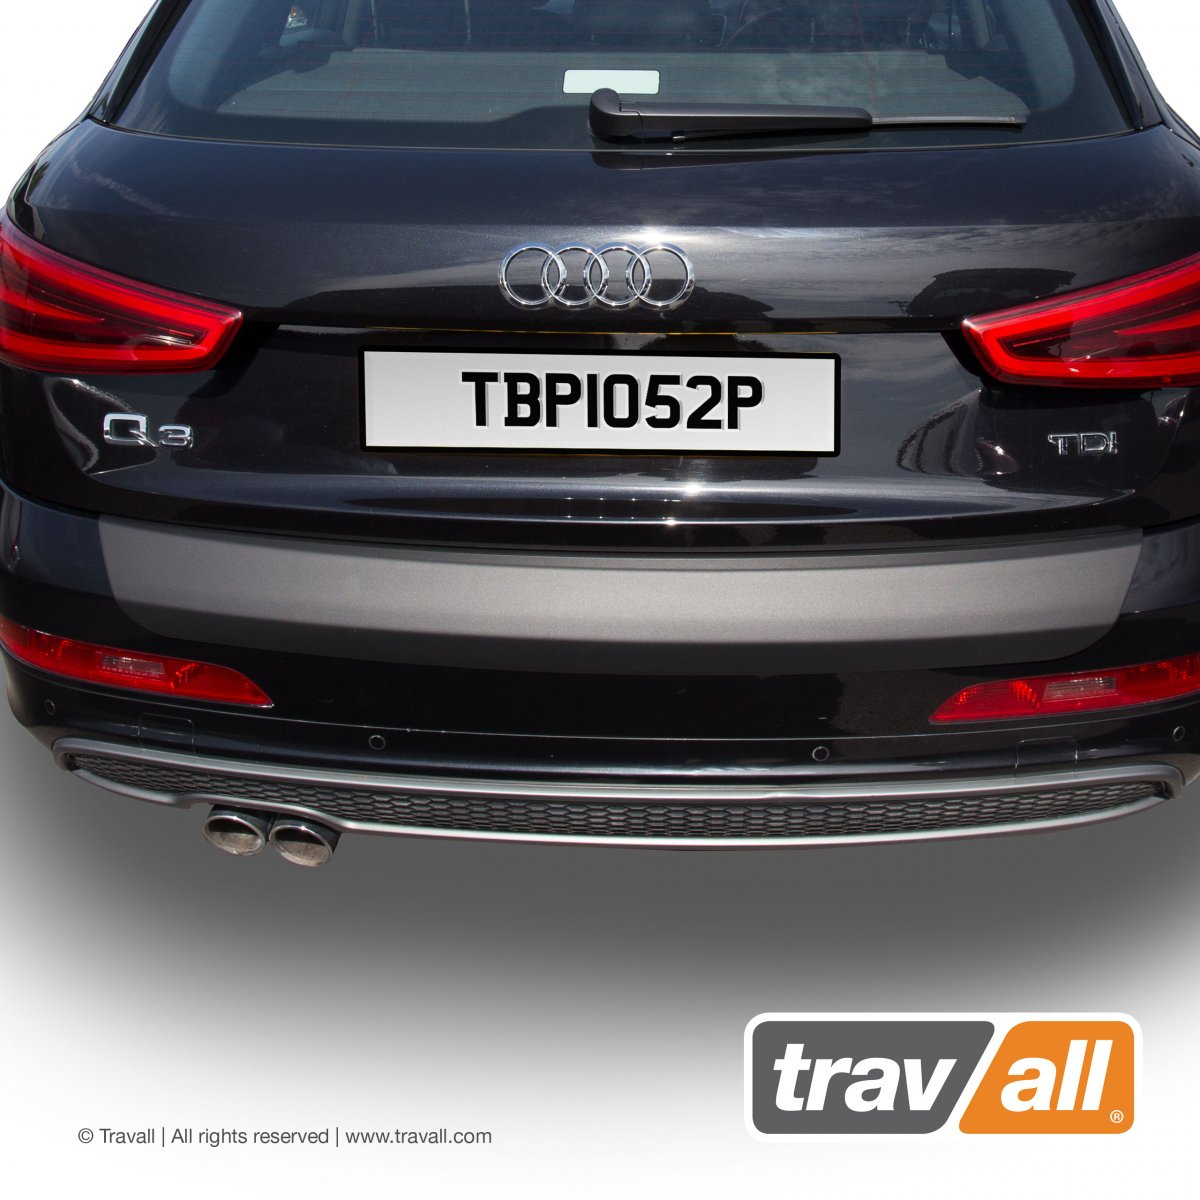 Travall® PROTECTOR-Plastic Smooth for Audi Q3 (2011-2018) / RS Q3 (2013 >)